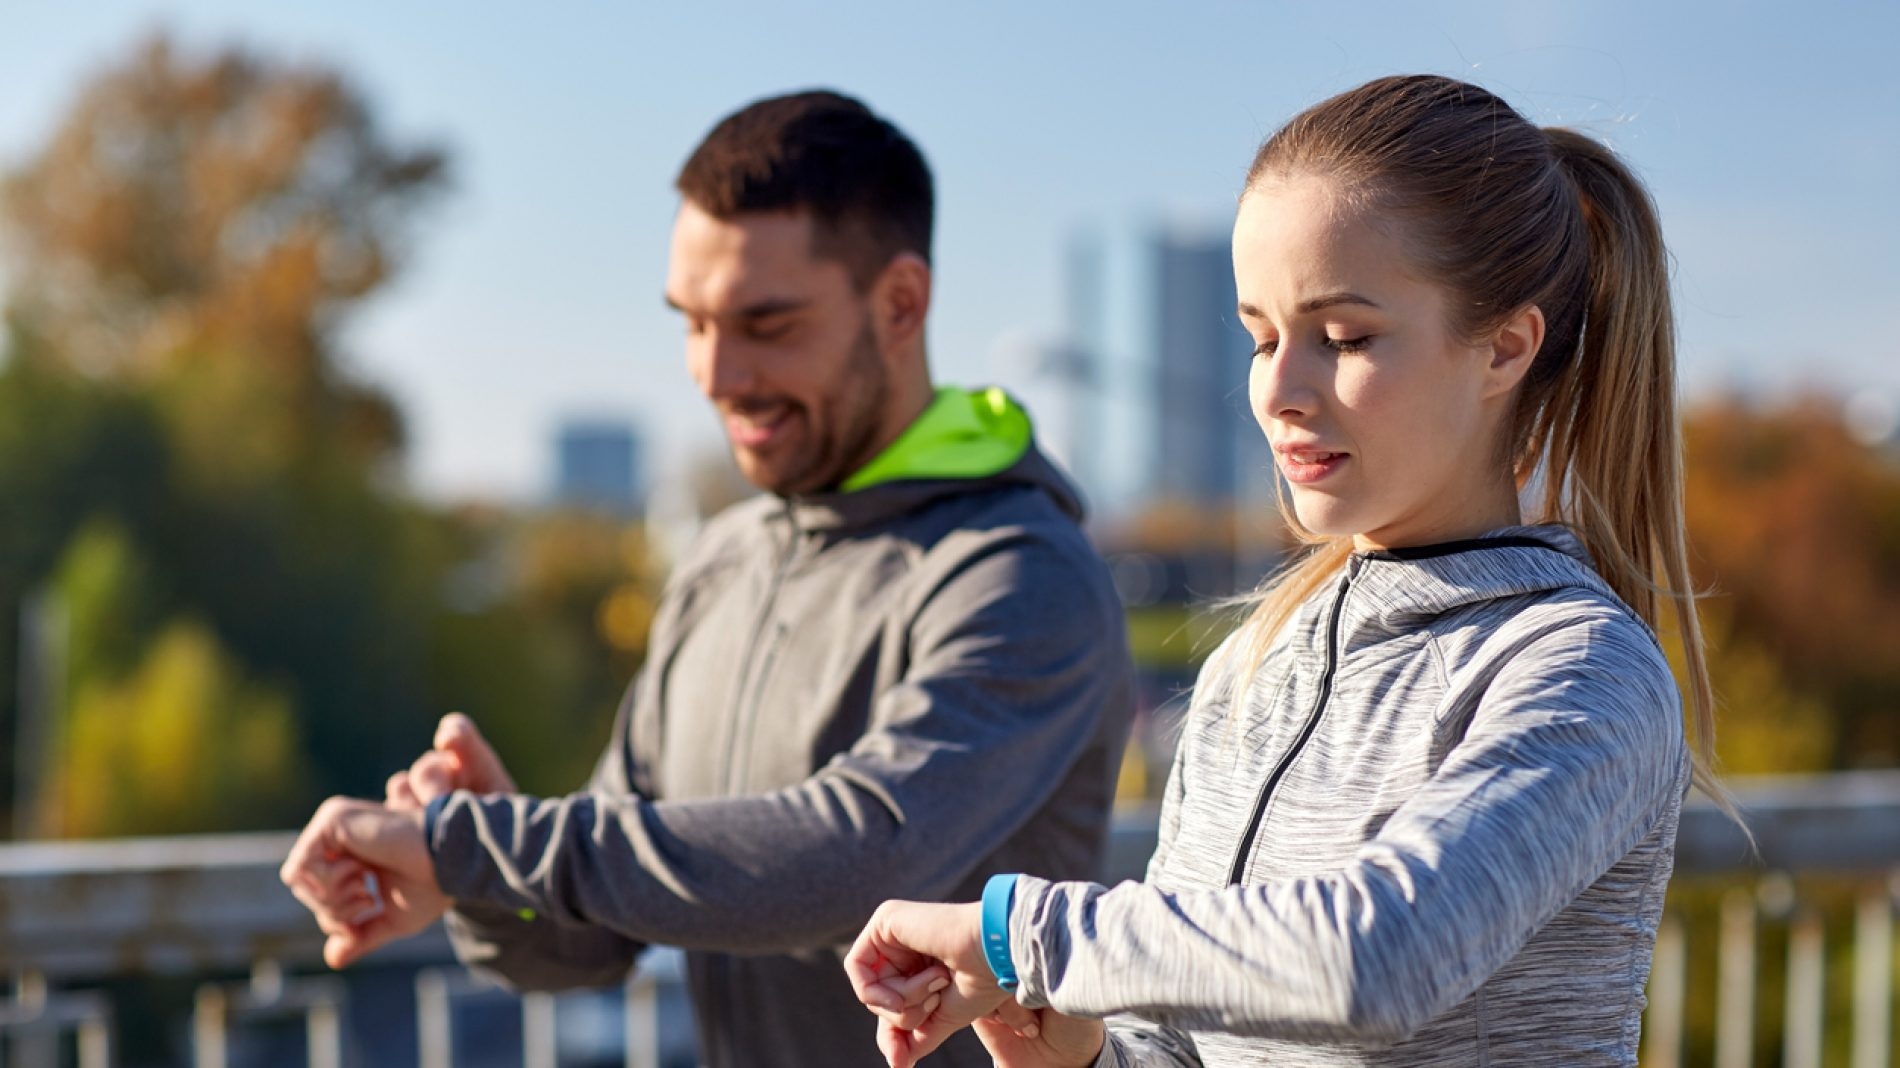 couple with fitness trackers training in city